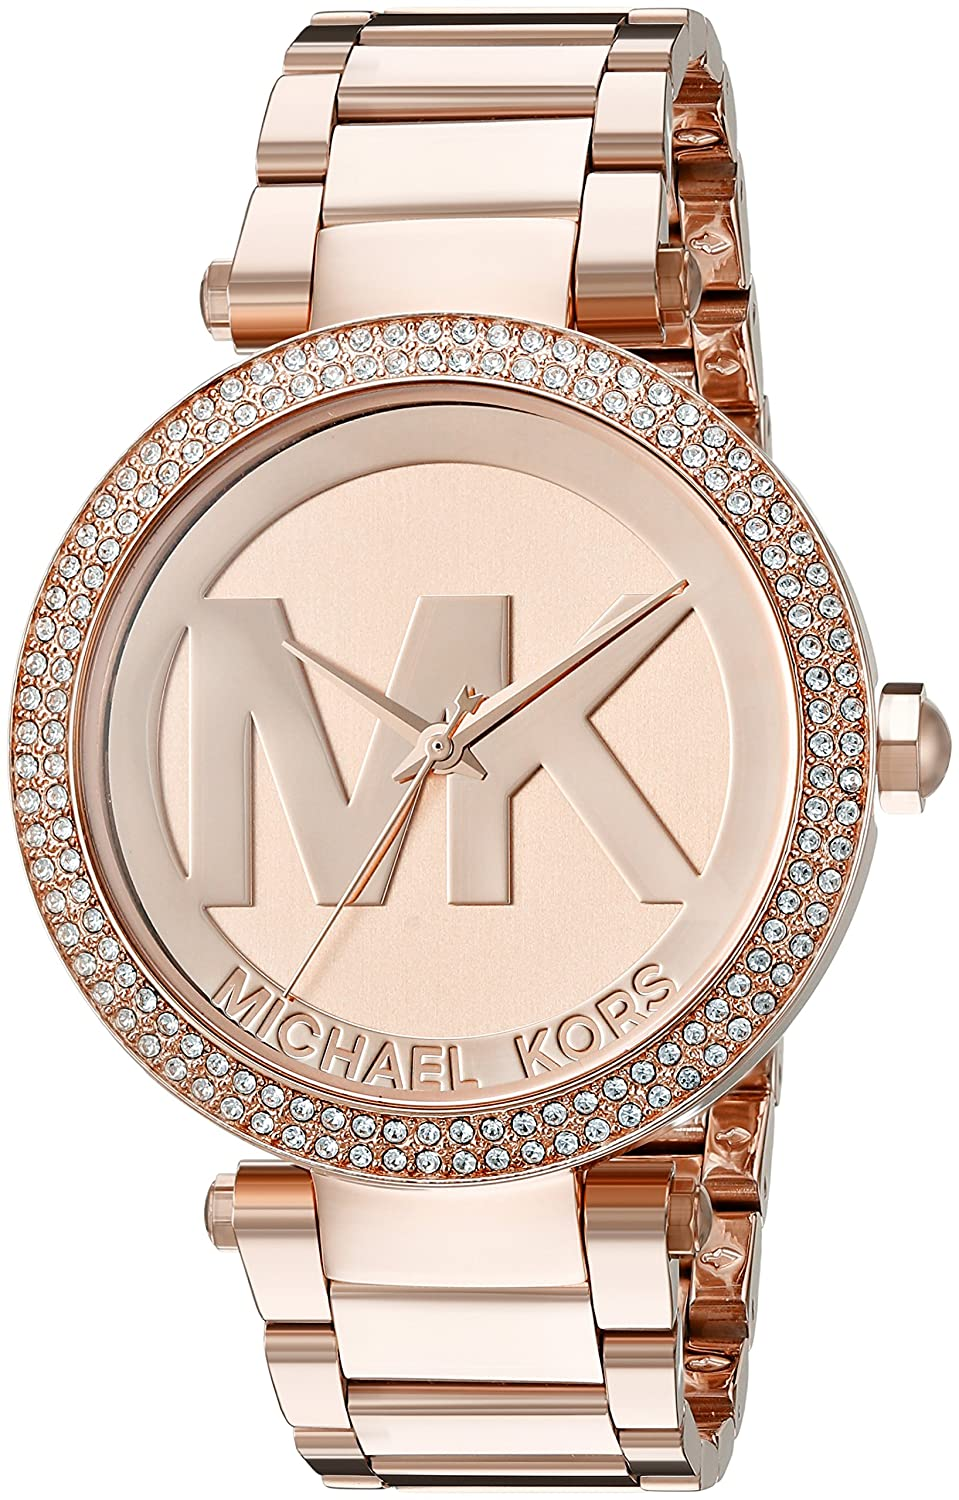 Shop women's designer handbags, purses & luggage on the official Michael Kors.